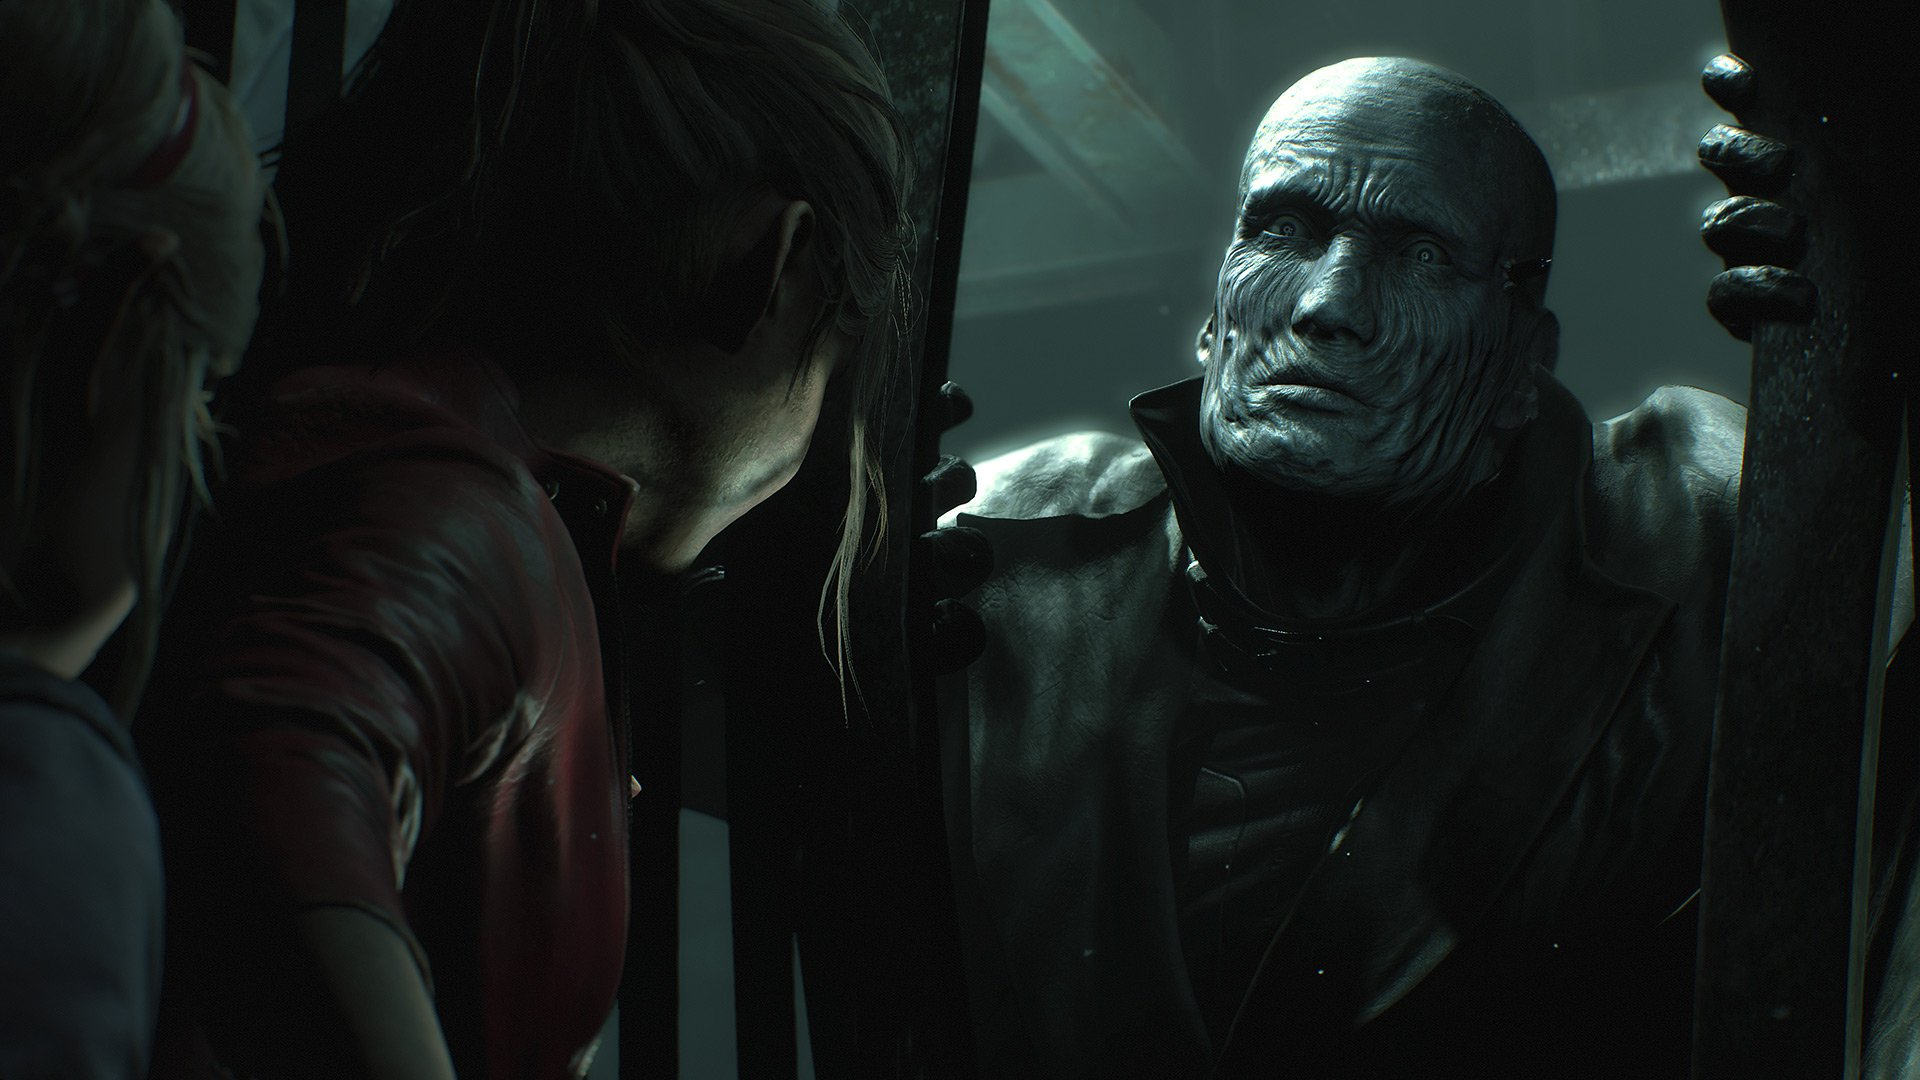 Mr. X isn't messing around in the Resident Evil 2 remake screenshot